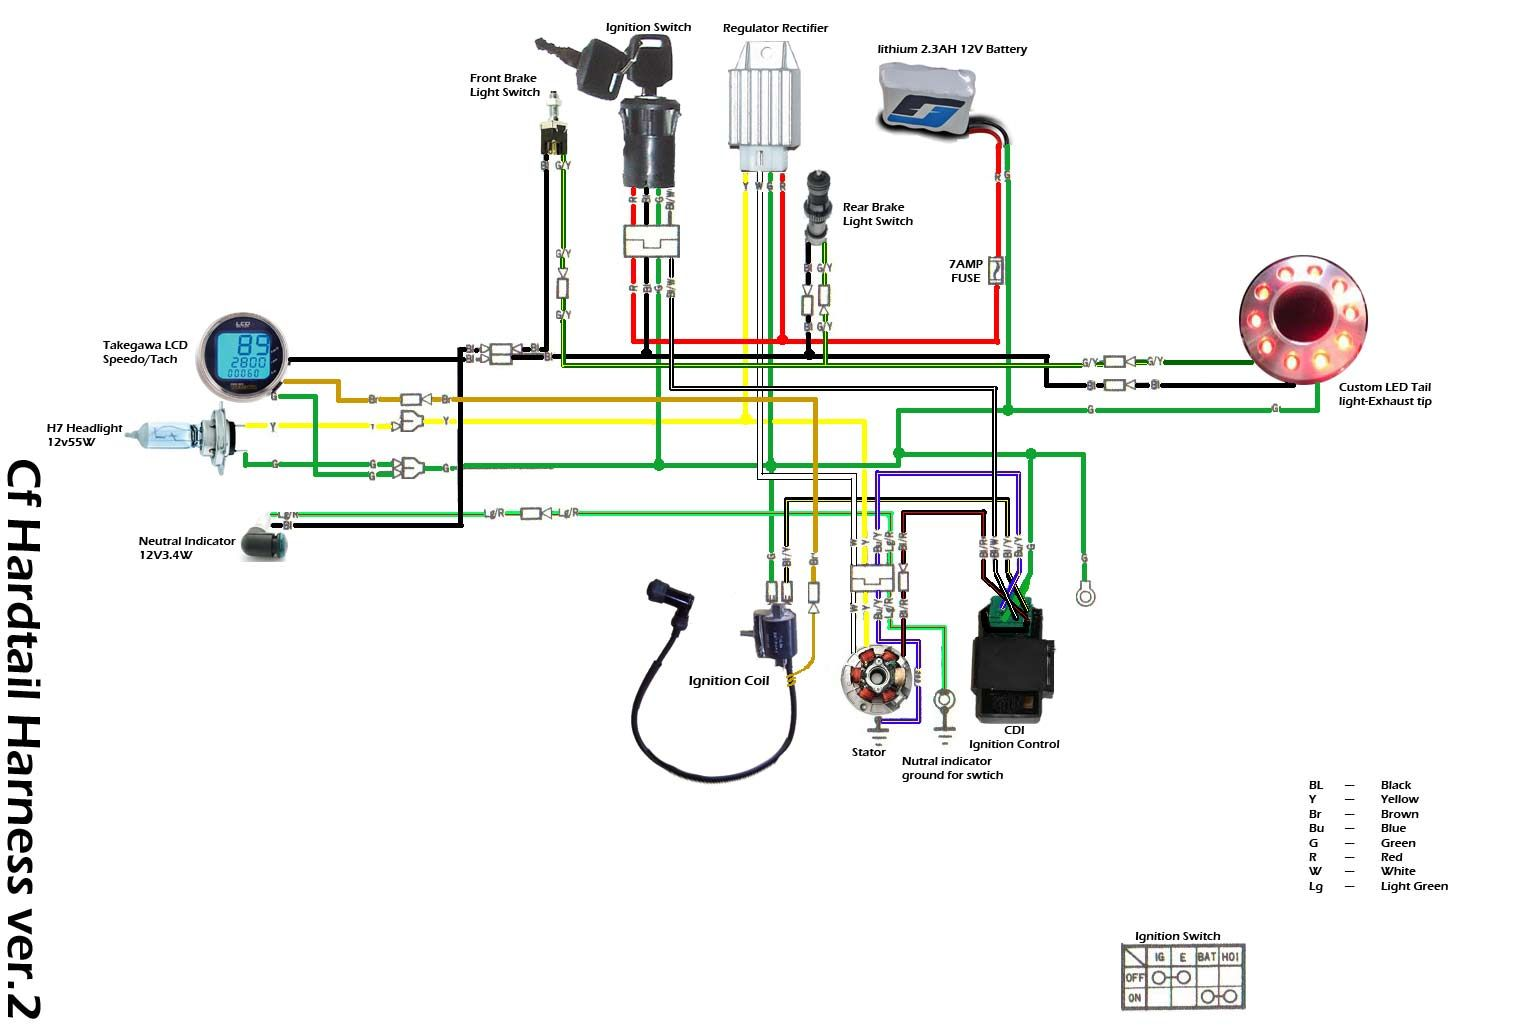 110cc Wiring Diagram Wiring Diagram Schematics Tao Tao 110 Wiring Diagram  Chinese 110cc Atv Wiring Diagram